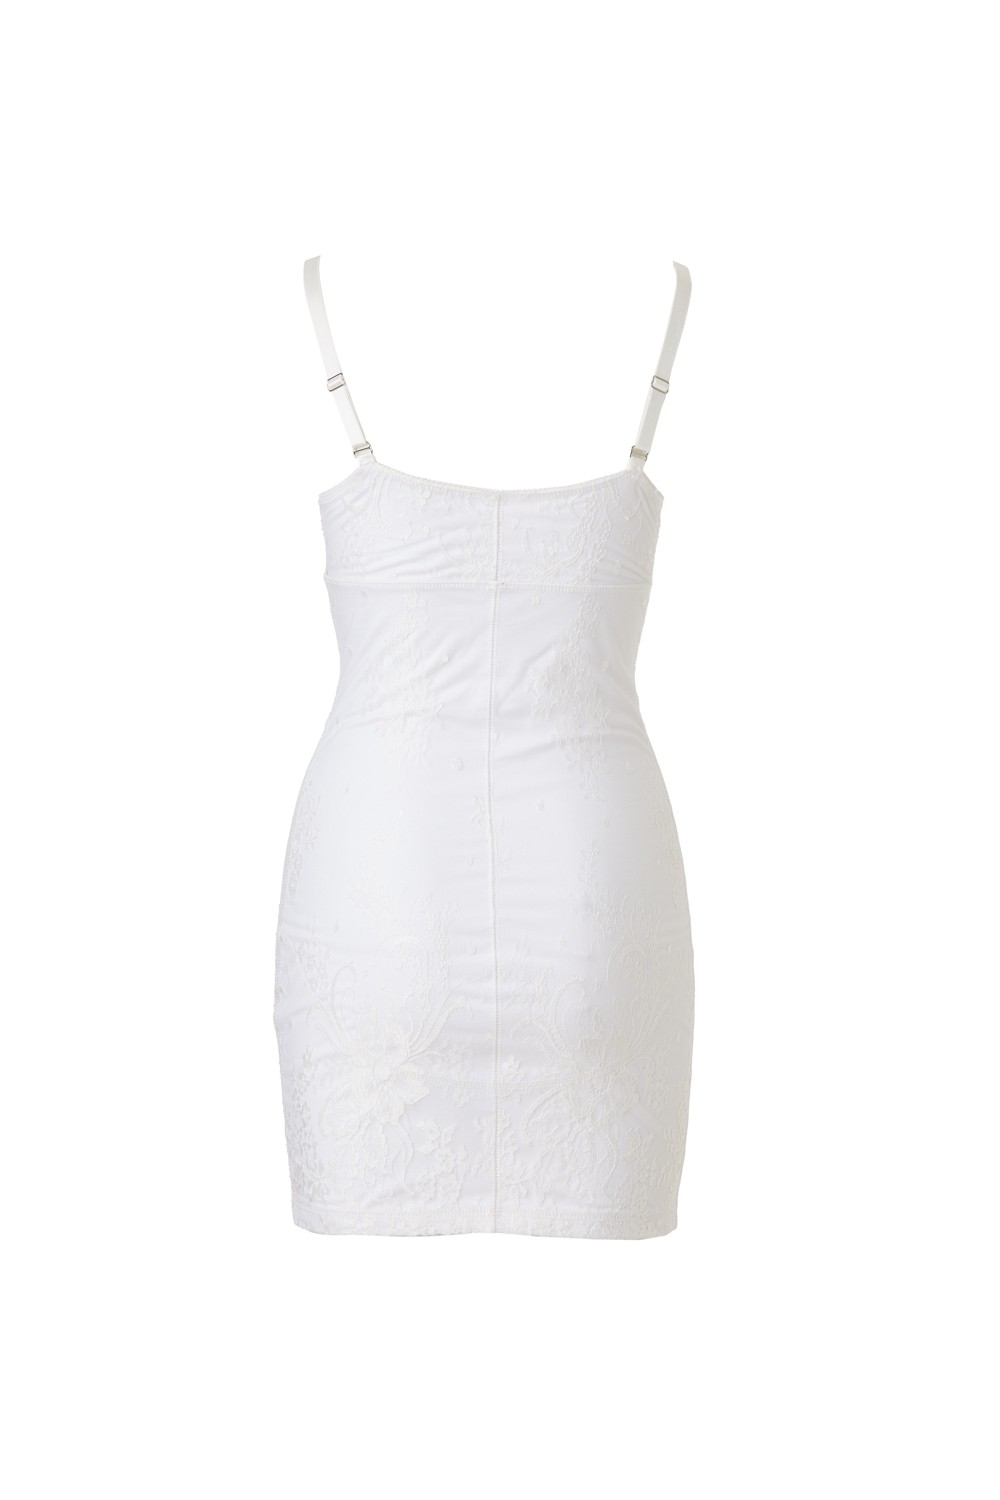 Retro Dress - Cotton Jersey and Silk Satin - Short - white - lace